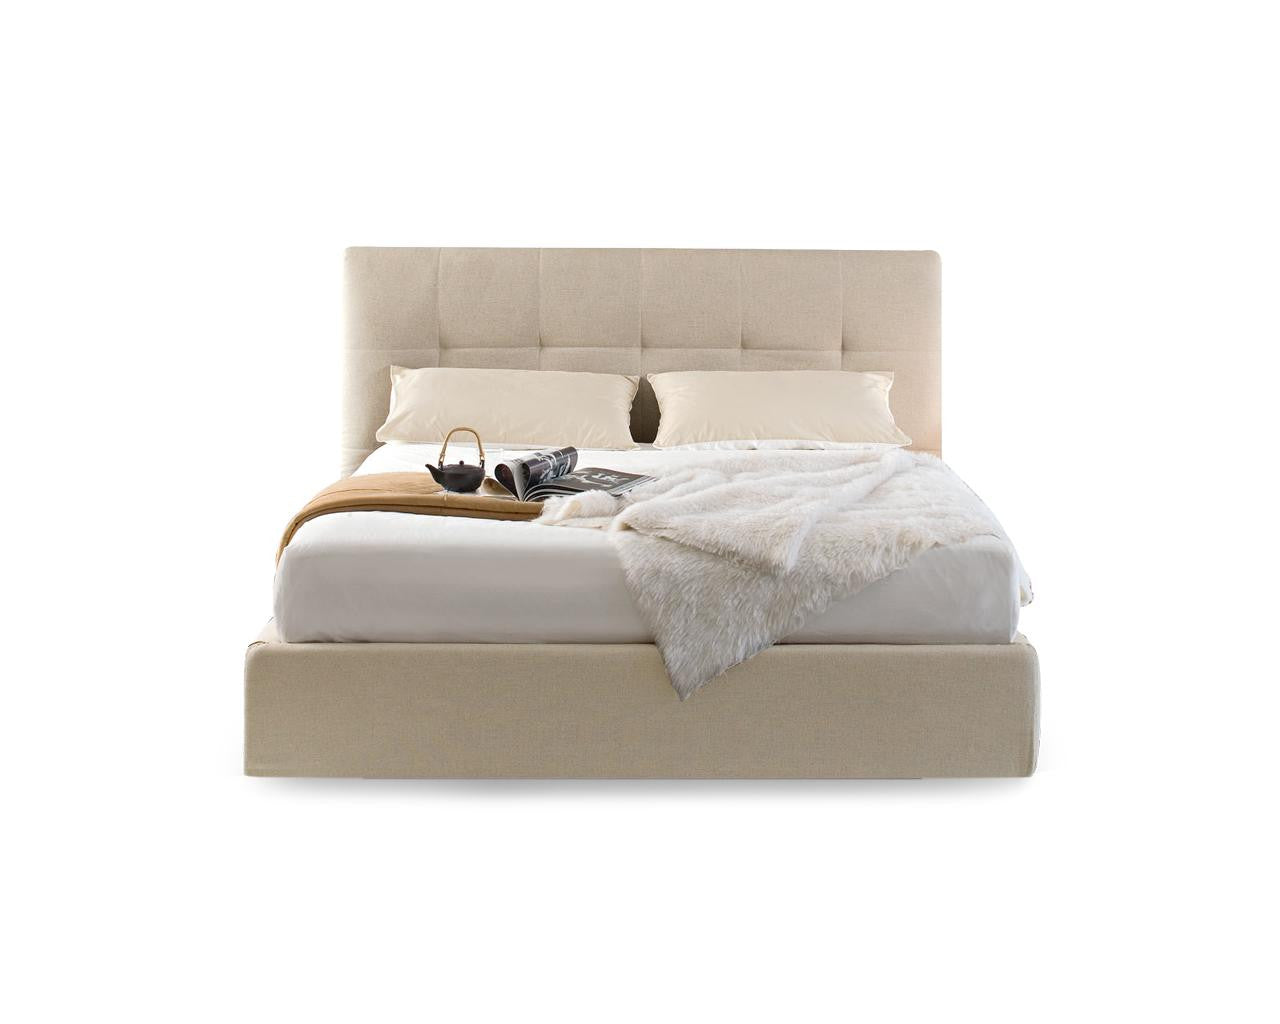 Swami Bed